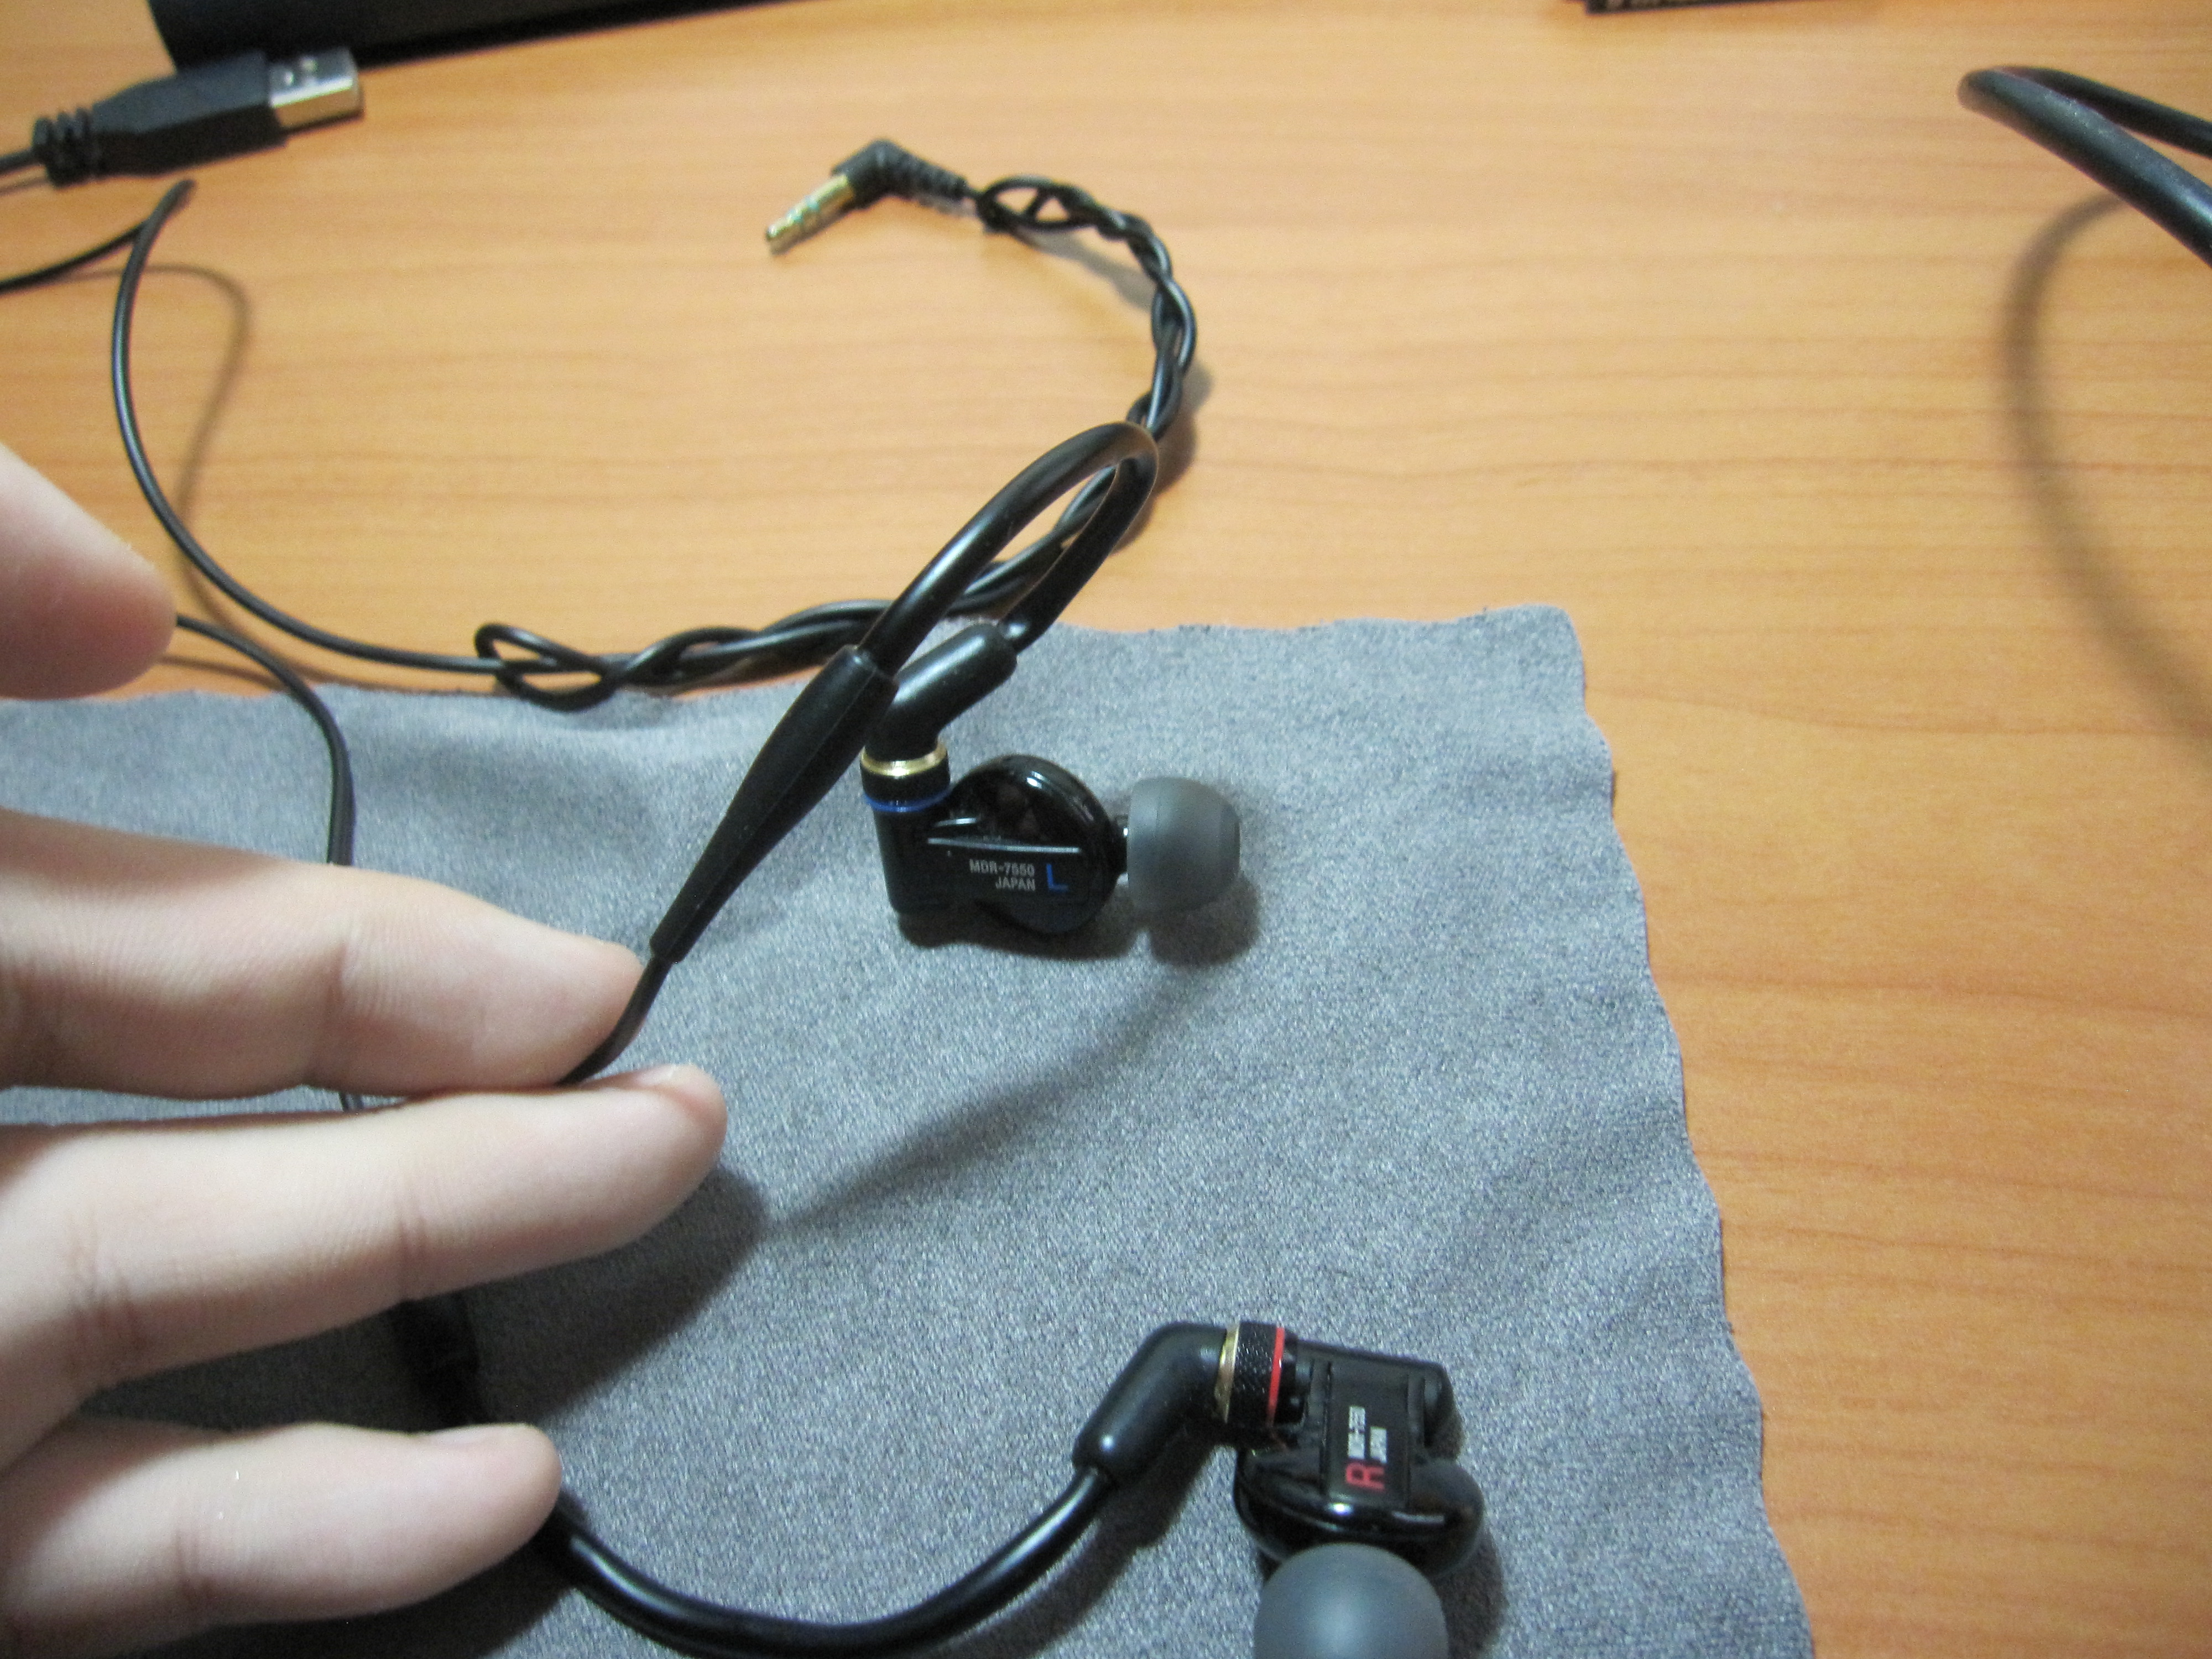 Review: Sony MDR-7550 | Headphone Reviews and Discussion - Head-Fi.org